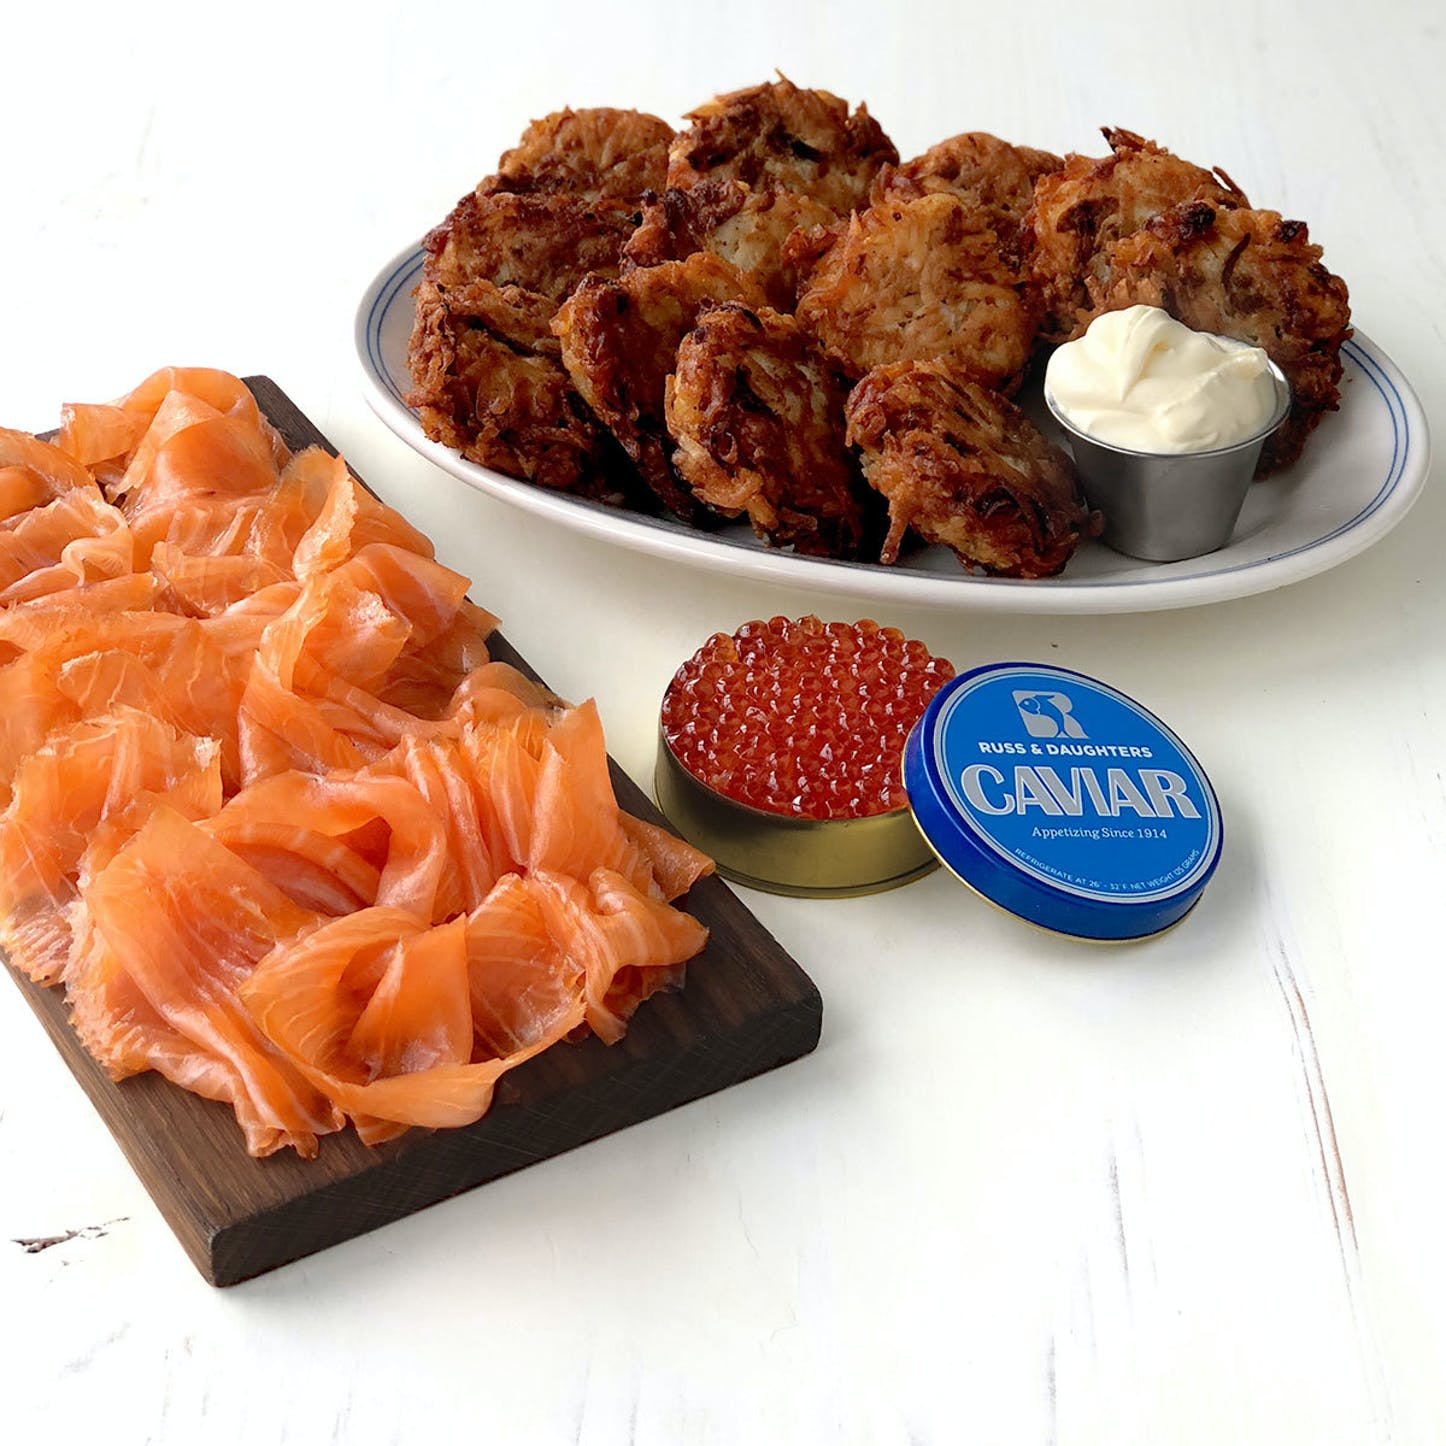 Best Hanukkah gifts from small businesses: Deluxe Hanukkah food basket from Russ & Daughters